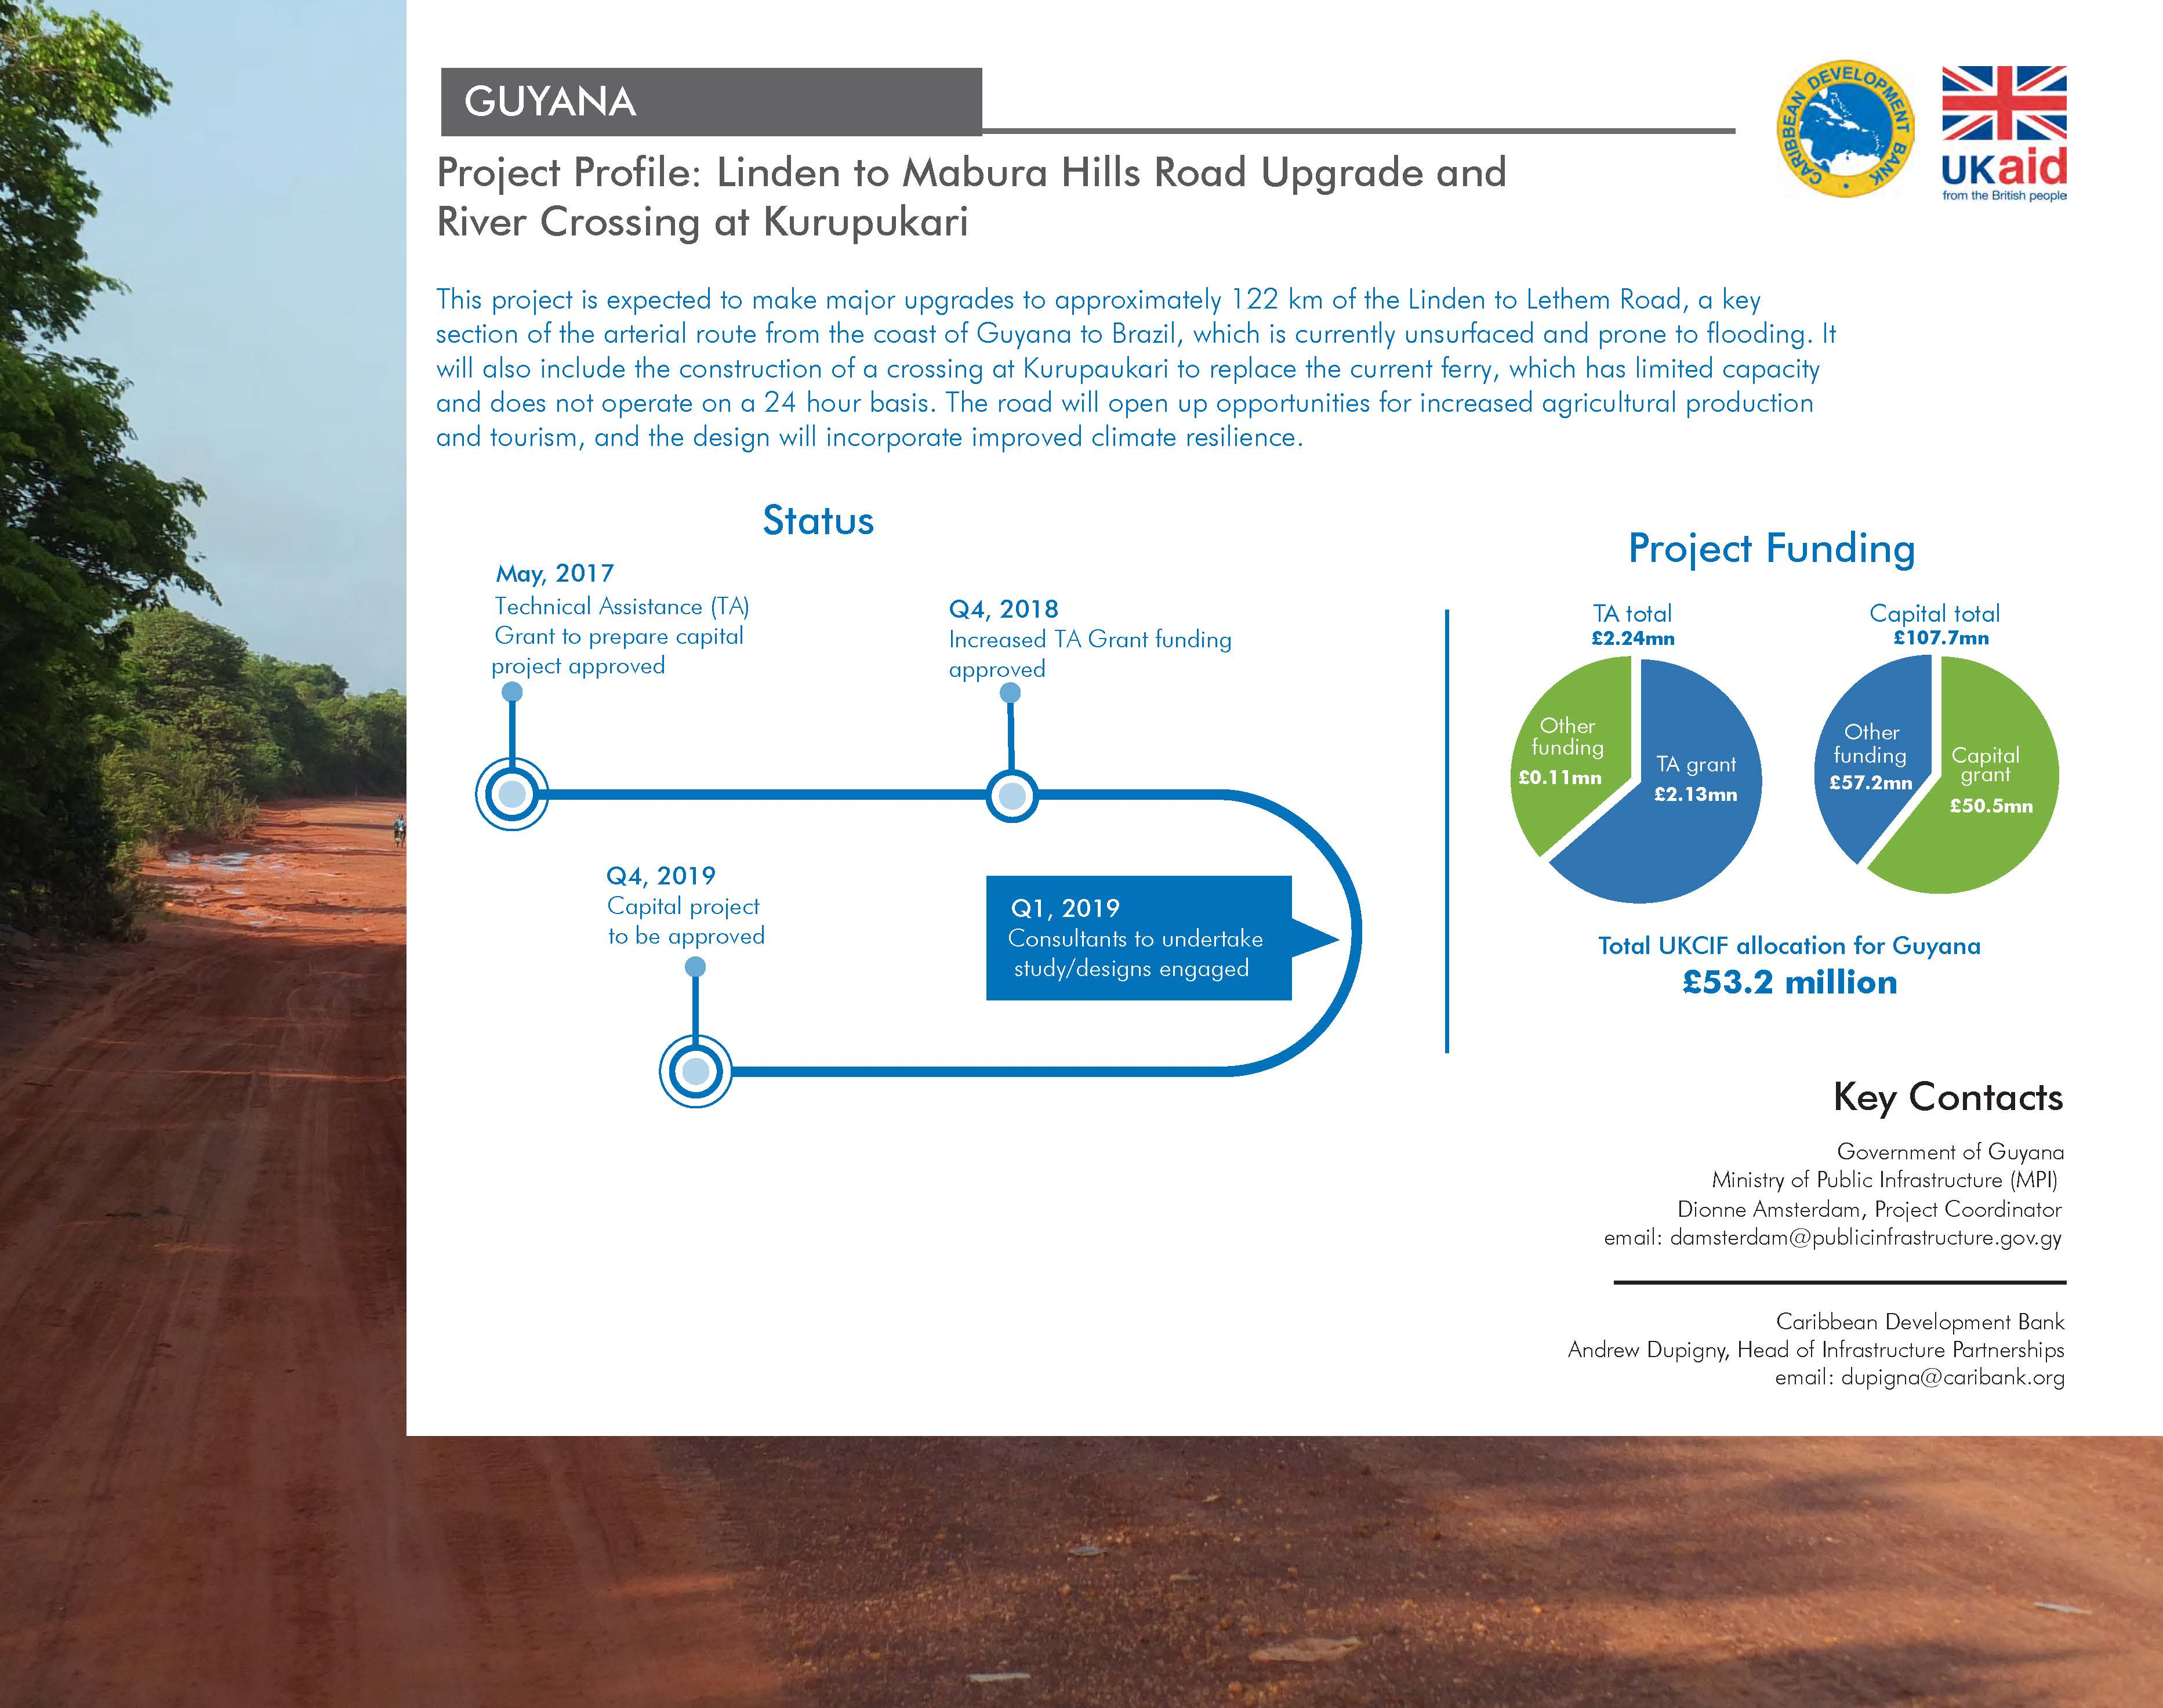 project profile with background image of a dirt road with text and charts against white backdrop